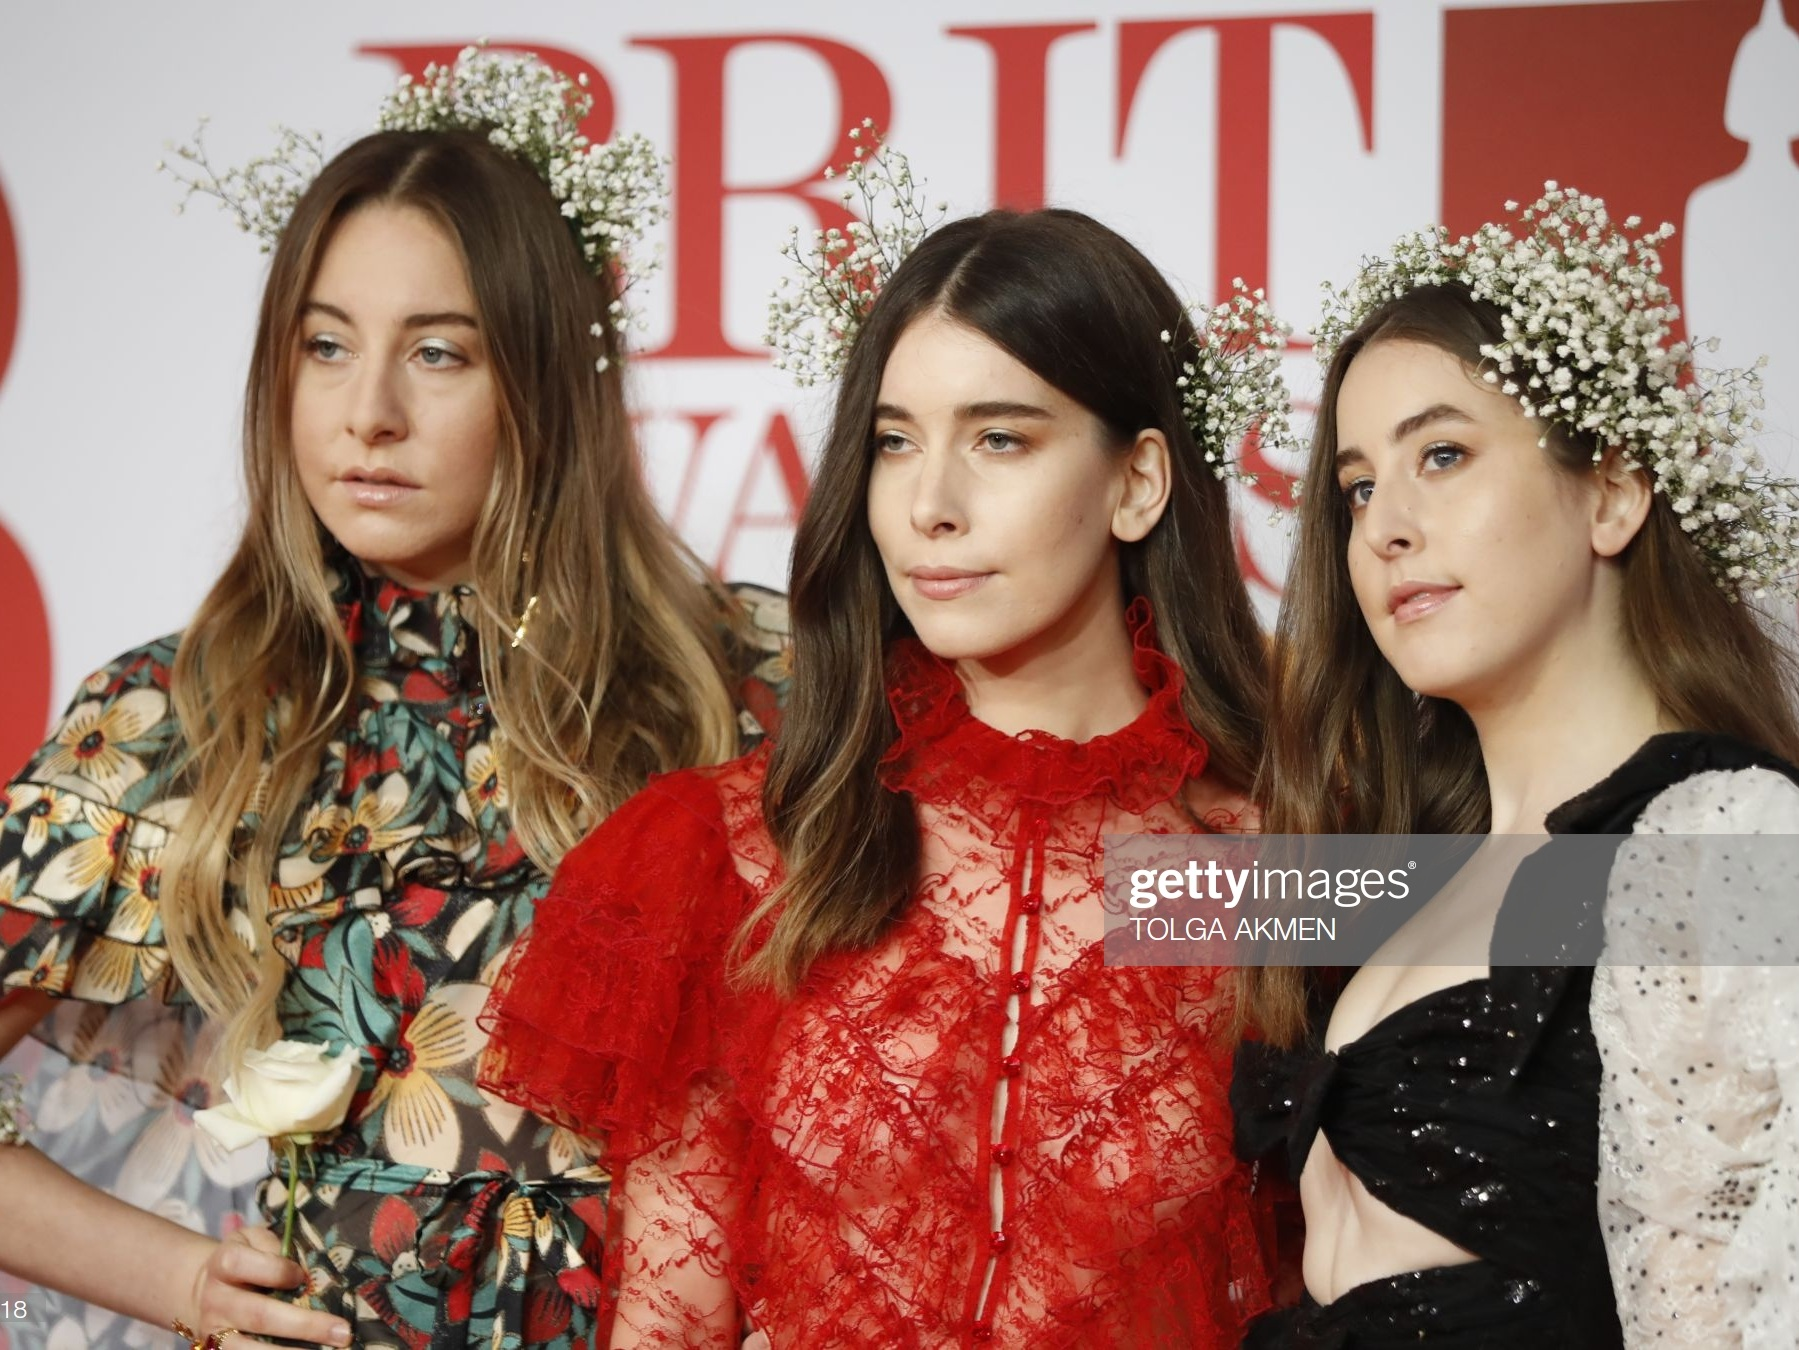 US pop rock band 'Haim', Este Haim, Danielle Haim and Alana Haim, pose on the red carpet on arrival for the BRIT Awards 2018 in London on February 21, 2018. / AFP PHOTO / Tolga AKMEN / RESTRICTED TO EDITORIAL USE  NO POSTERS  NO MERCHANDISE NO USE IN PUBLICATIONS DEVOTED TO ARTISTS        (Photo credit should read TOLGA AKMEN/AFP/Getty Images)